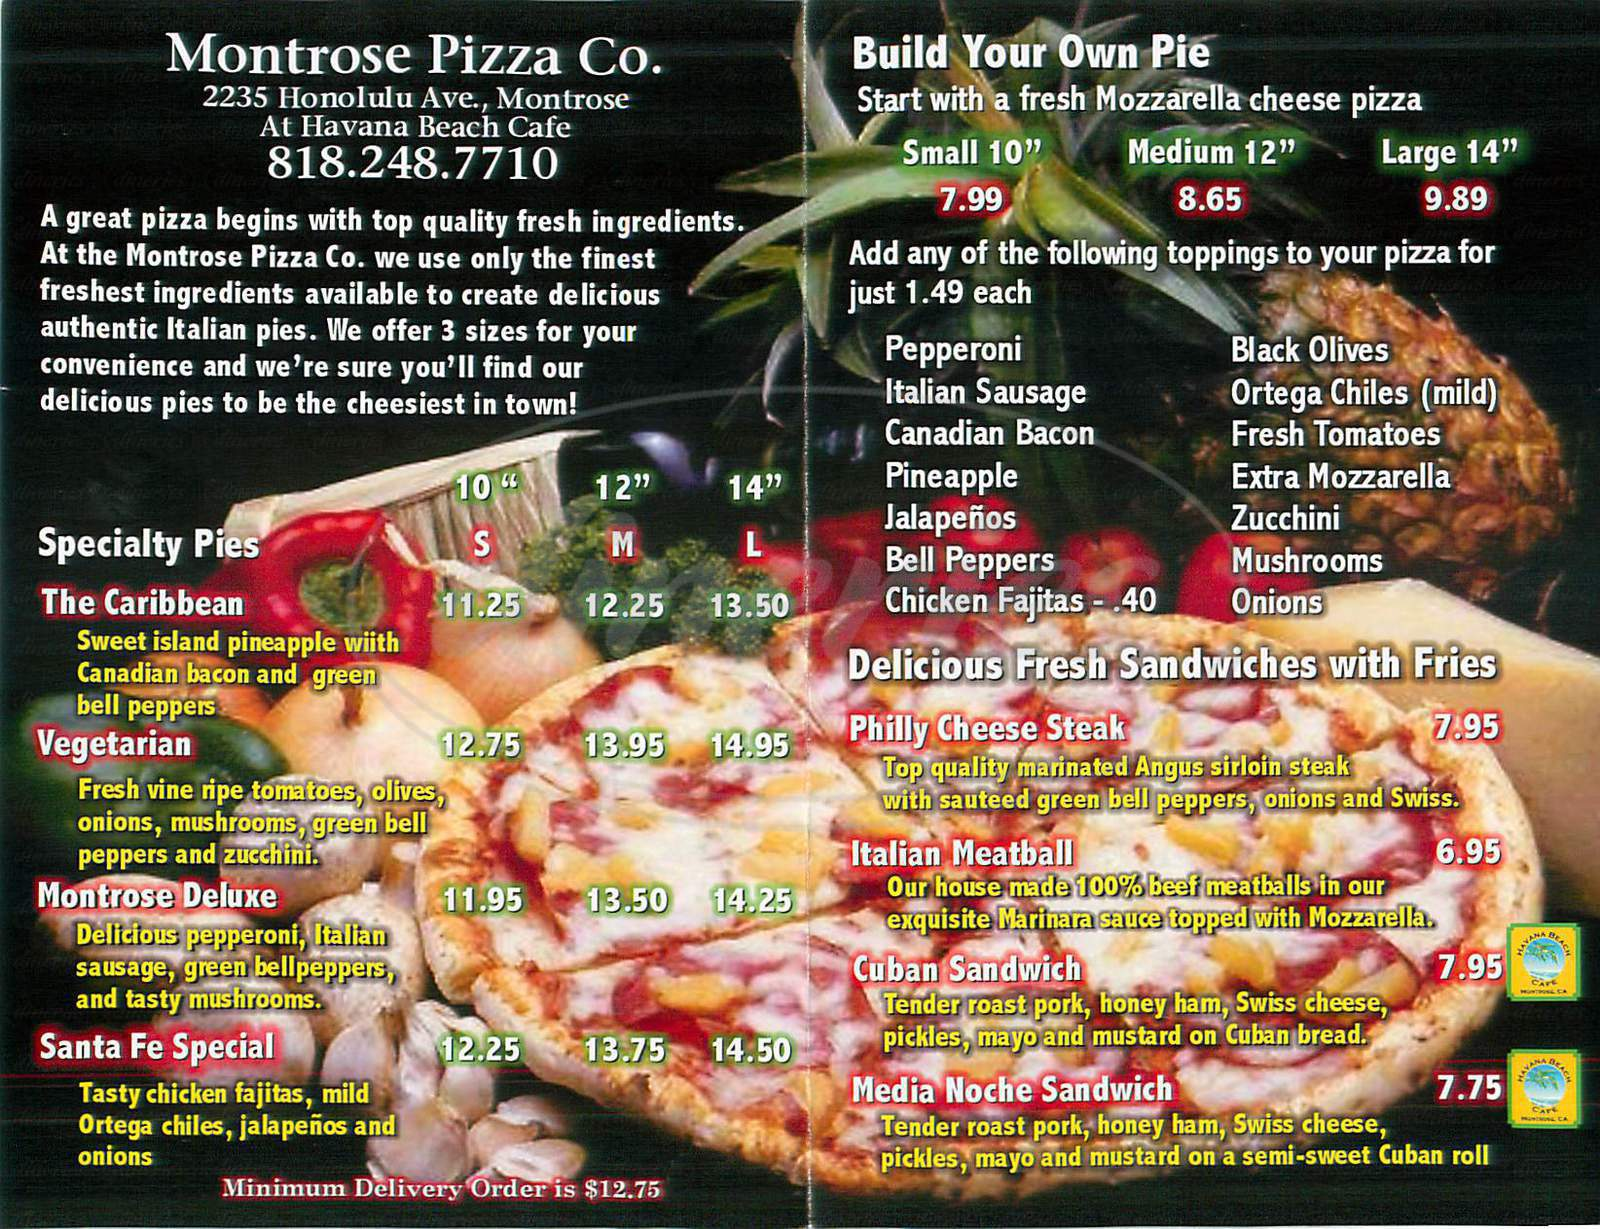 menu for Montrose Pizza Co.